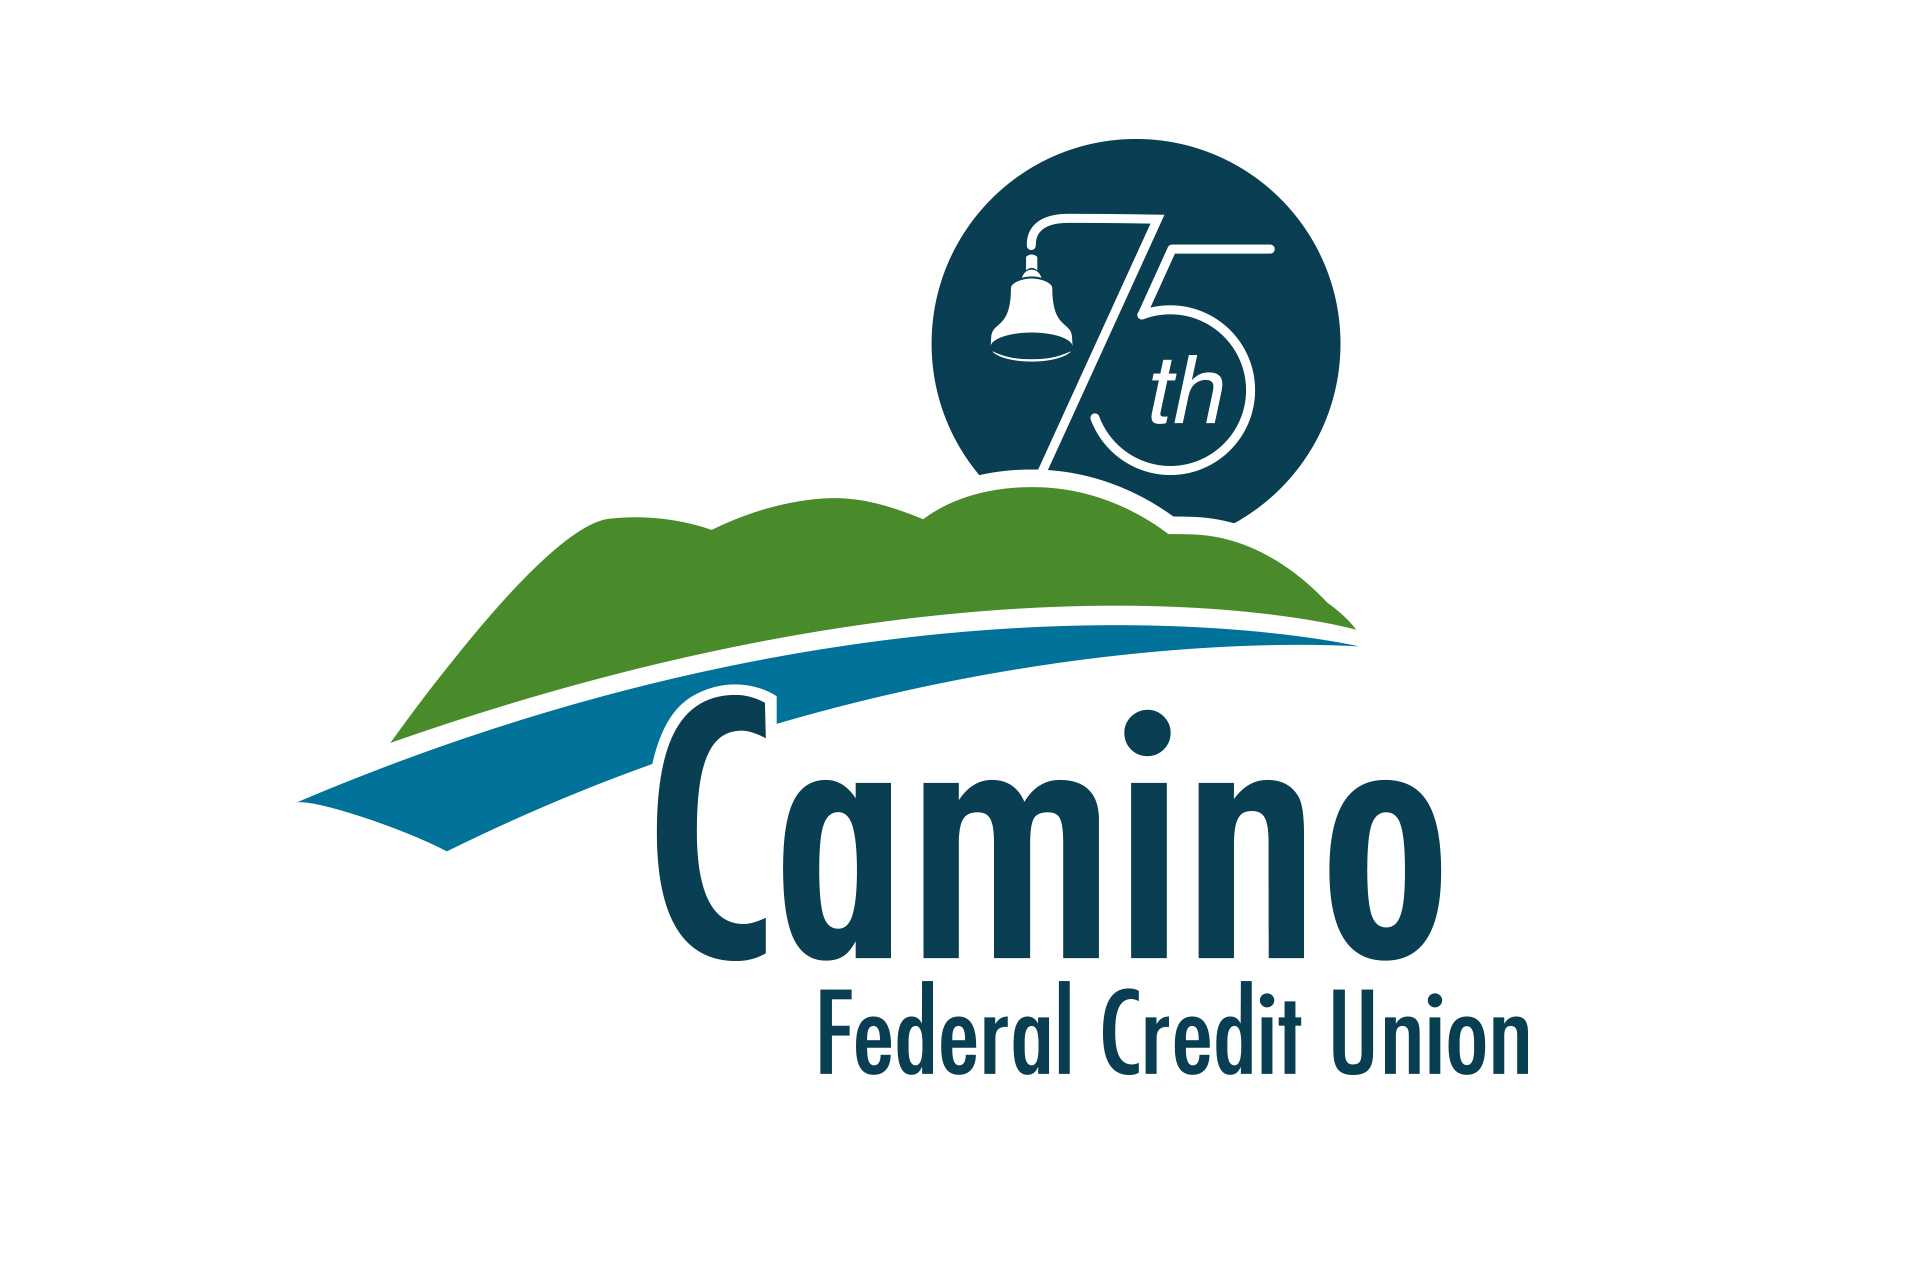 Camino Federal Credit Union Susan Young